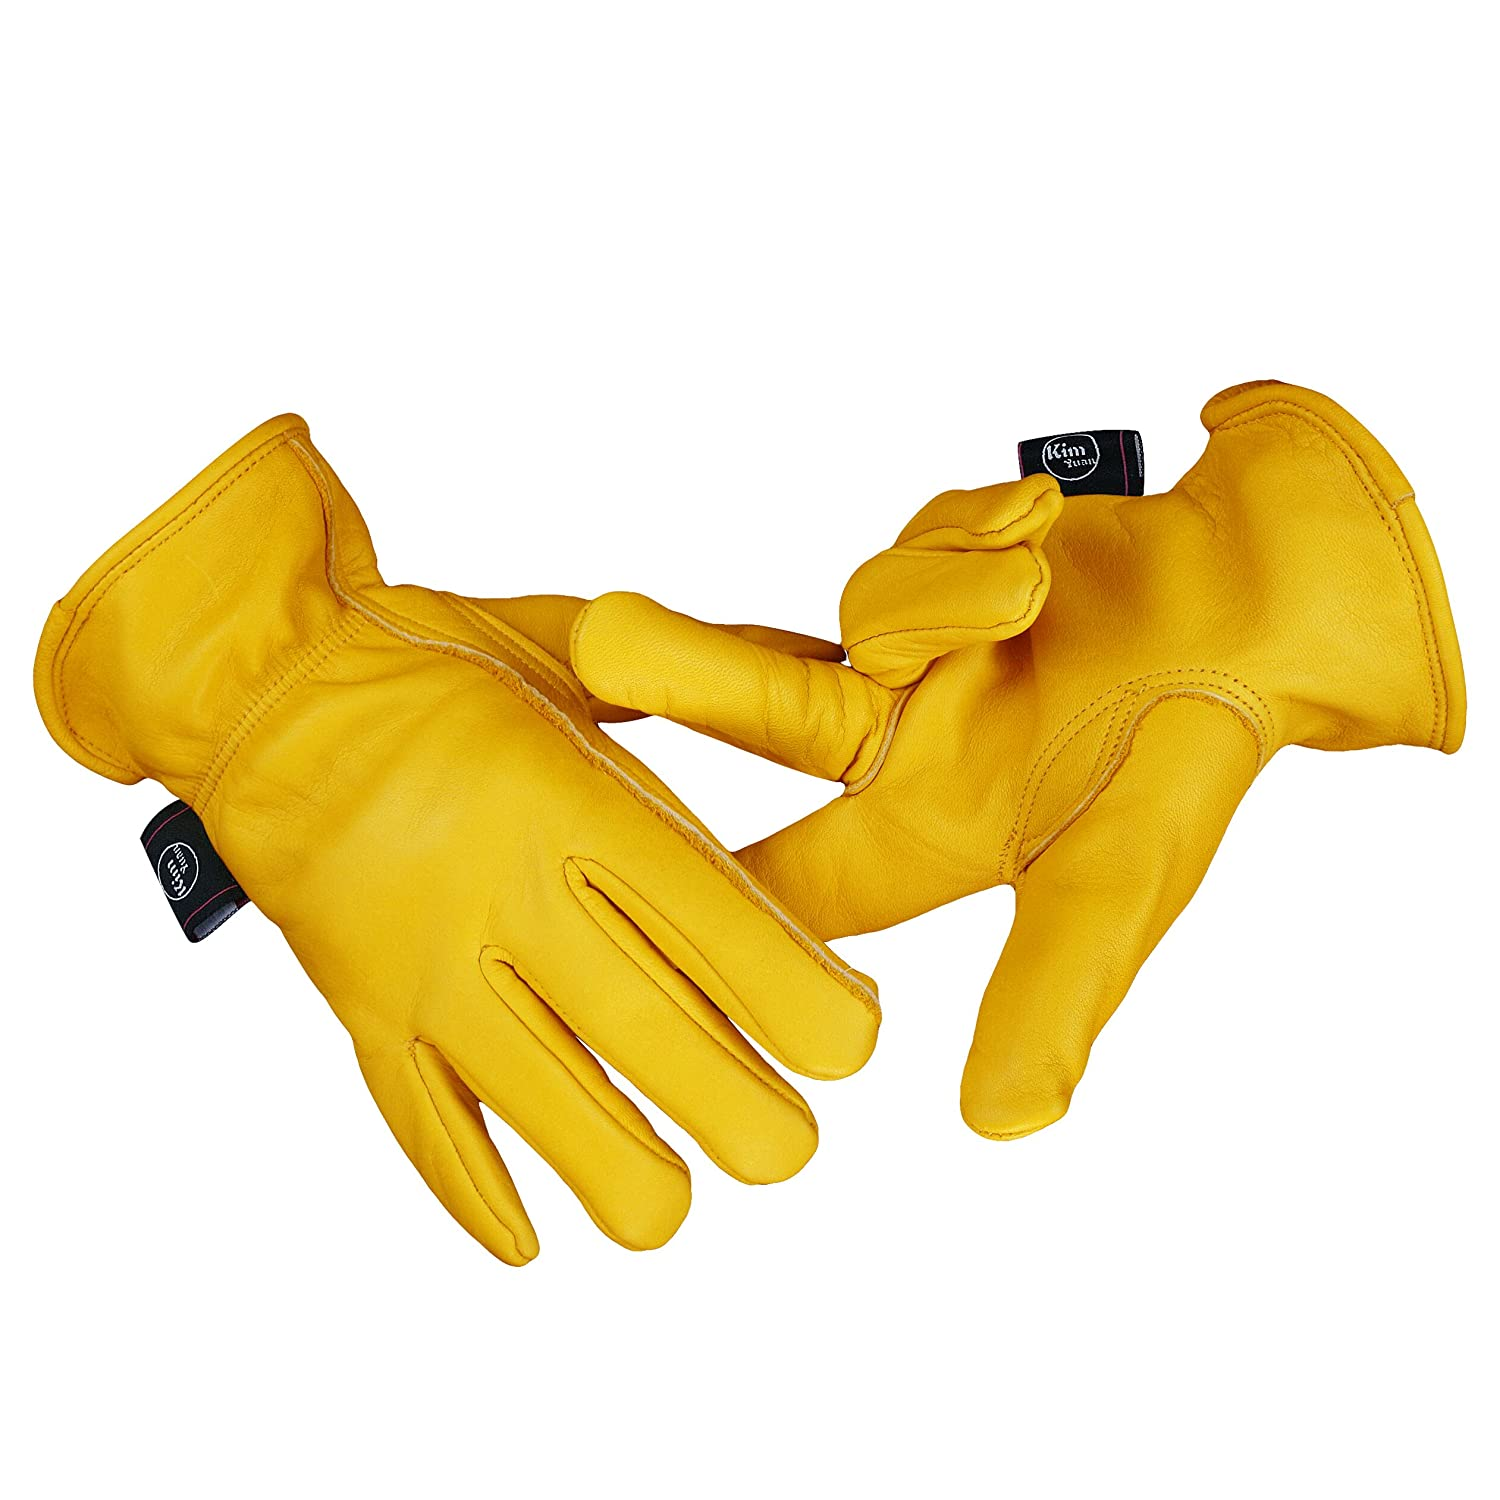 Men /& Women Large with Elastic Wrist KIM YUAN Leather Work Gloves for Gardening//Cutting//Construction//Motorcycle//Farm